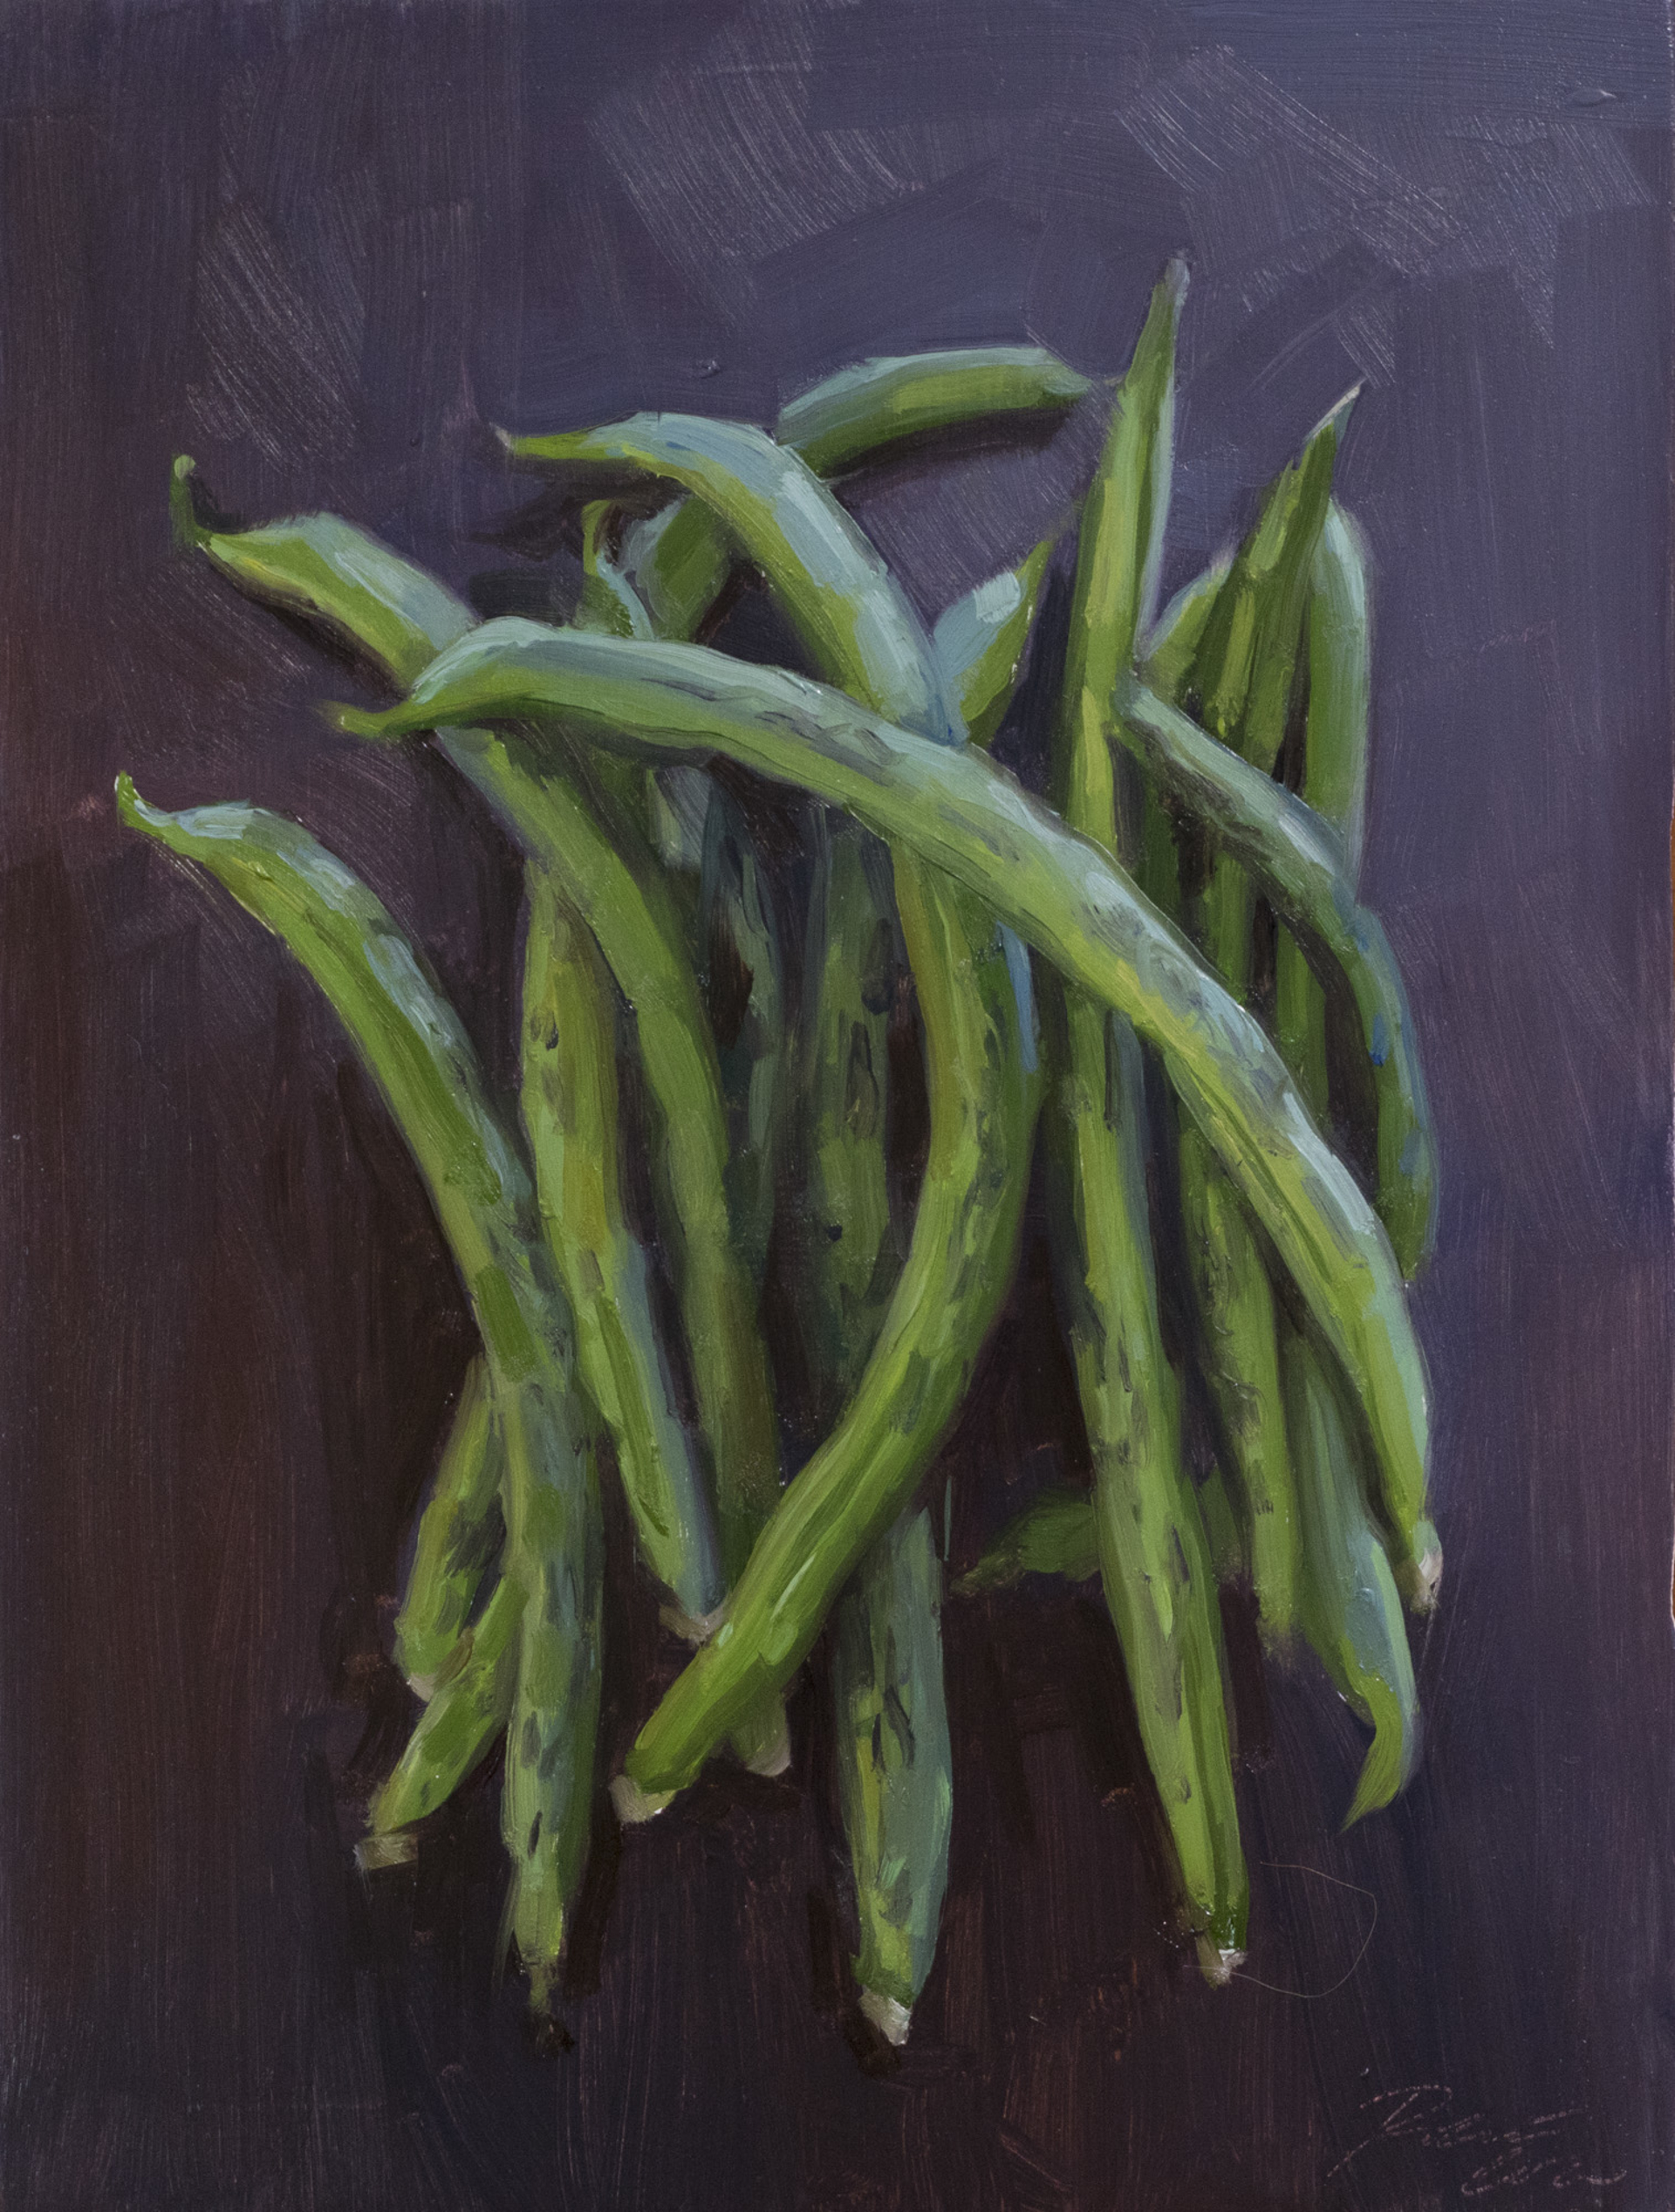 Green Beans by Robin Cole